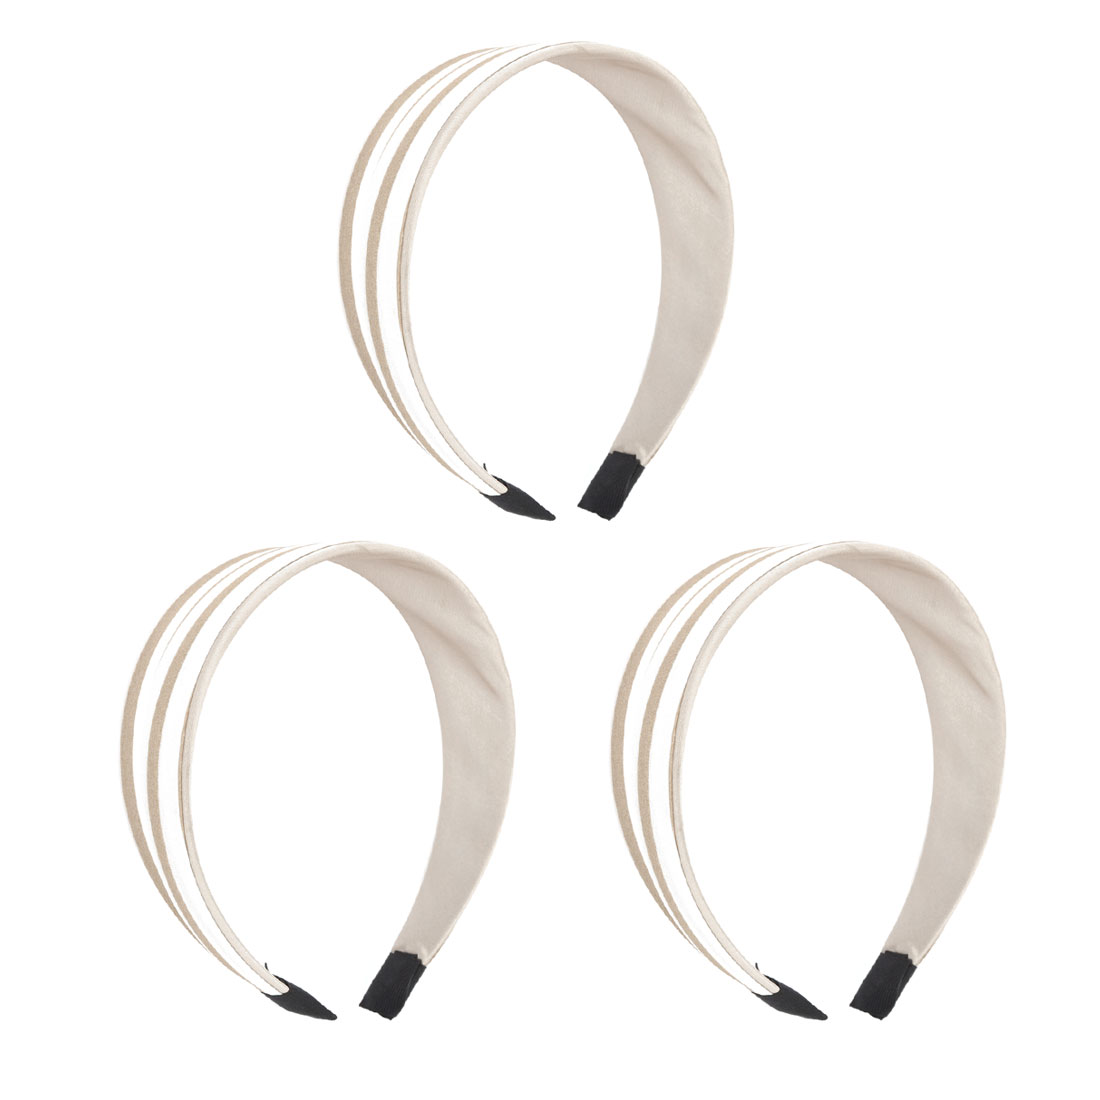 "3 Pcs Beige White Nylon Cloth Wrap Headdressing 1.5"" Width Plastic Frame Wide Head Band Hair Hoop for Lady"